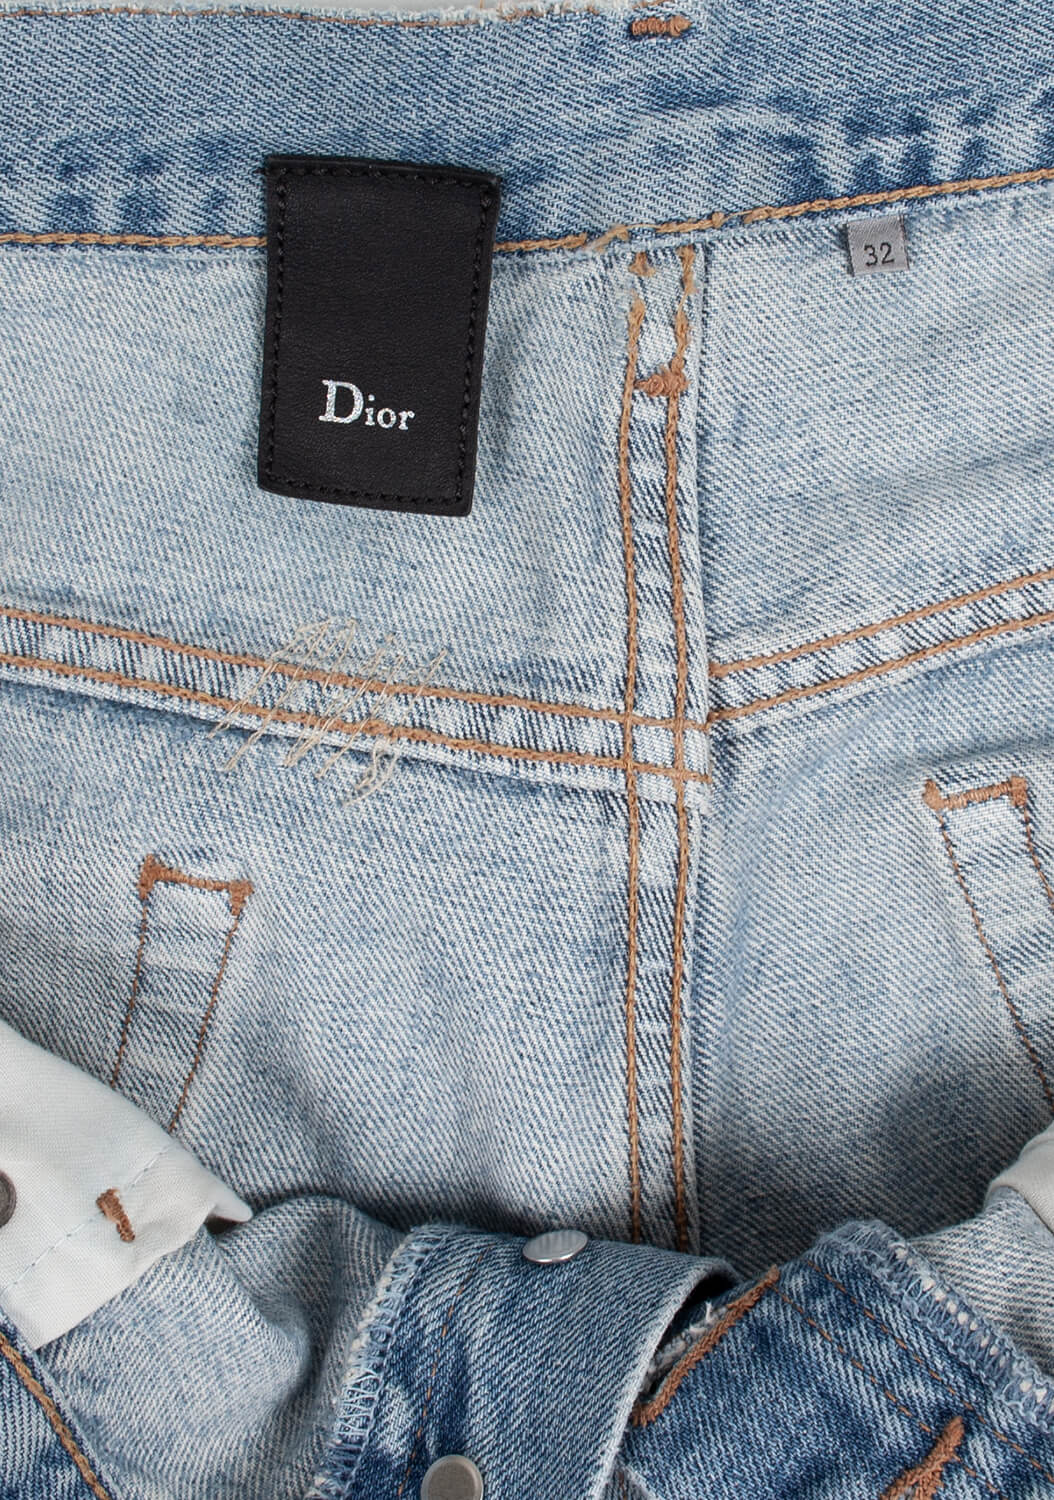 dior-distressed-dzinsai-4